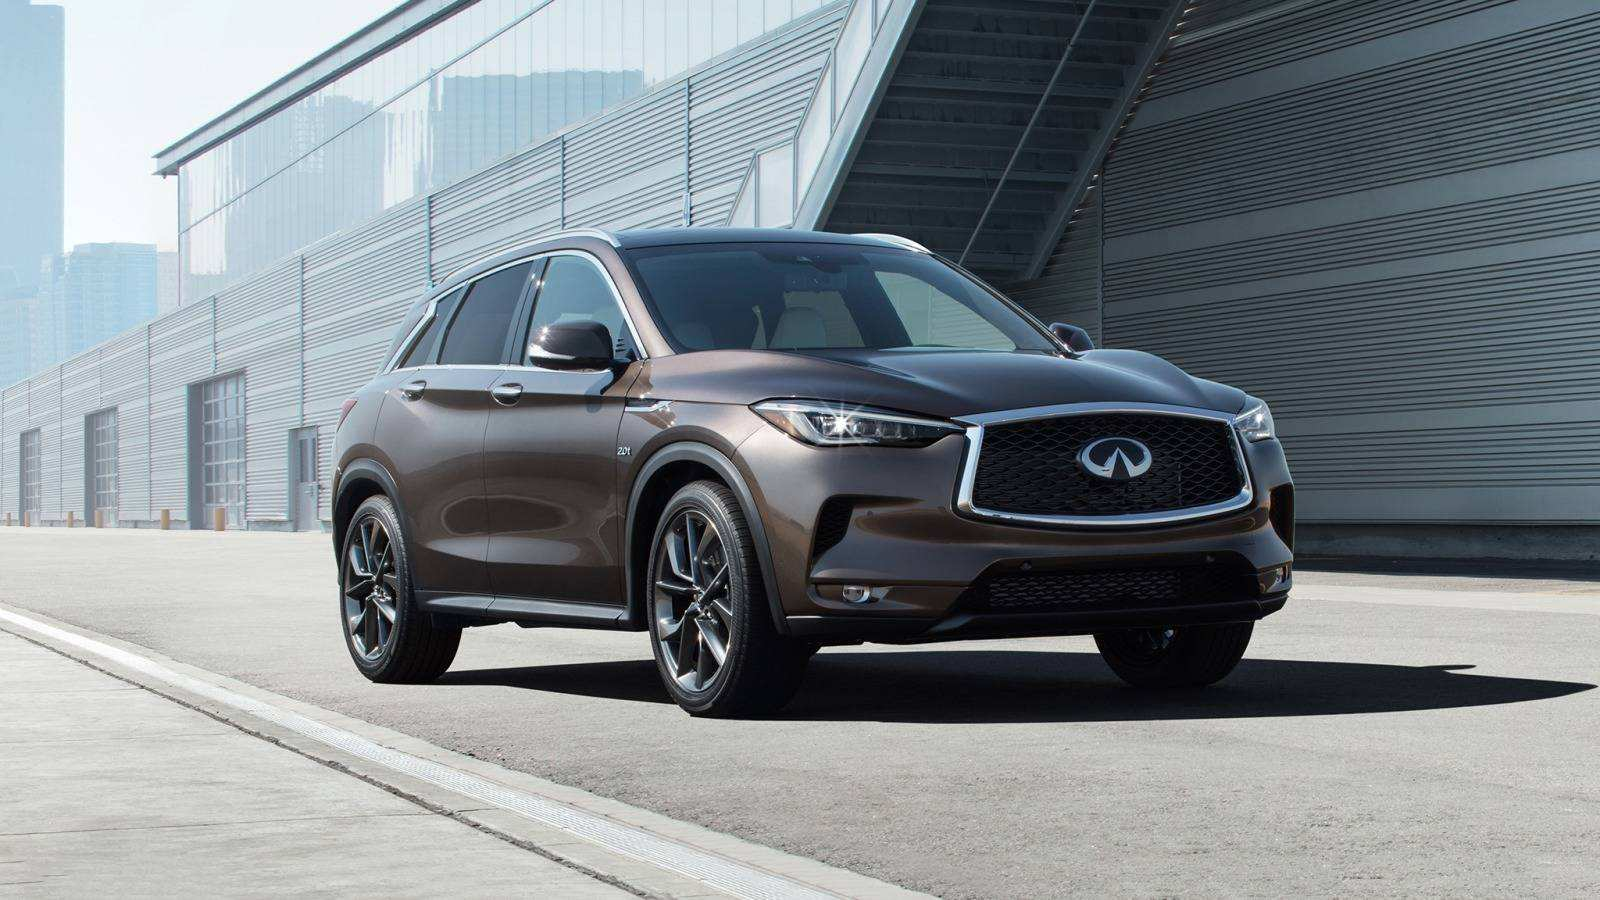 24 All New New 2019 Infiniti Qx50 Horsepower Review Price Design And Review